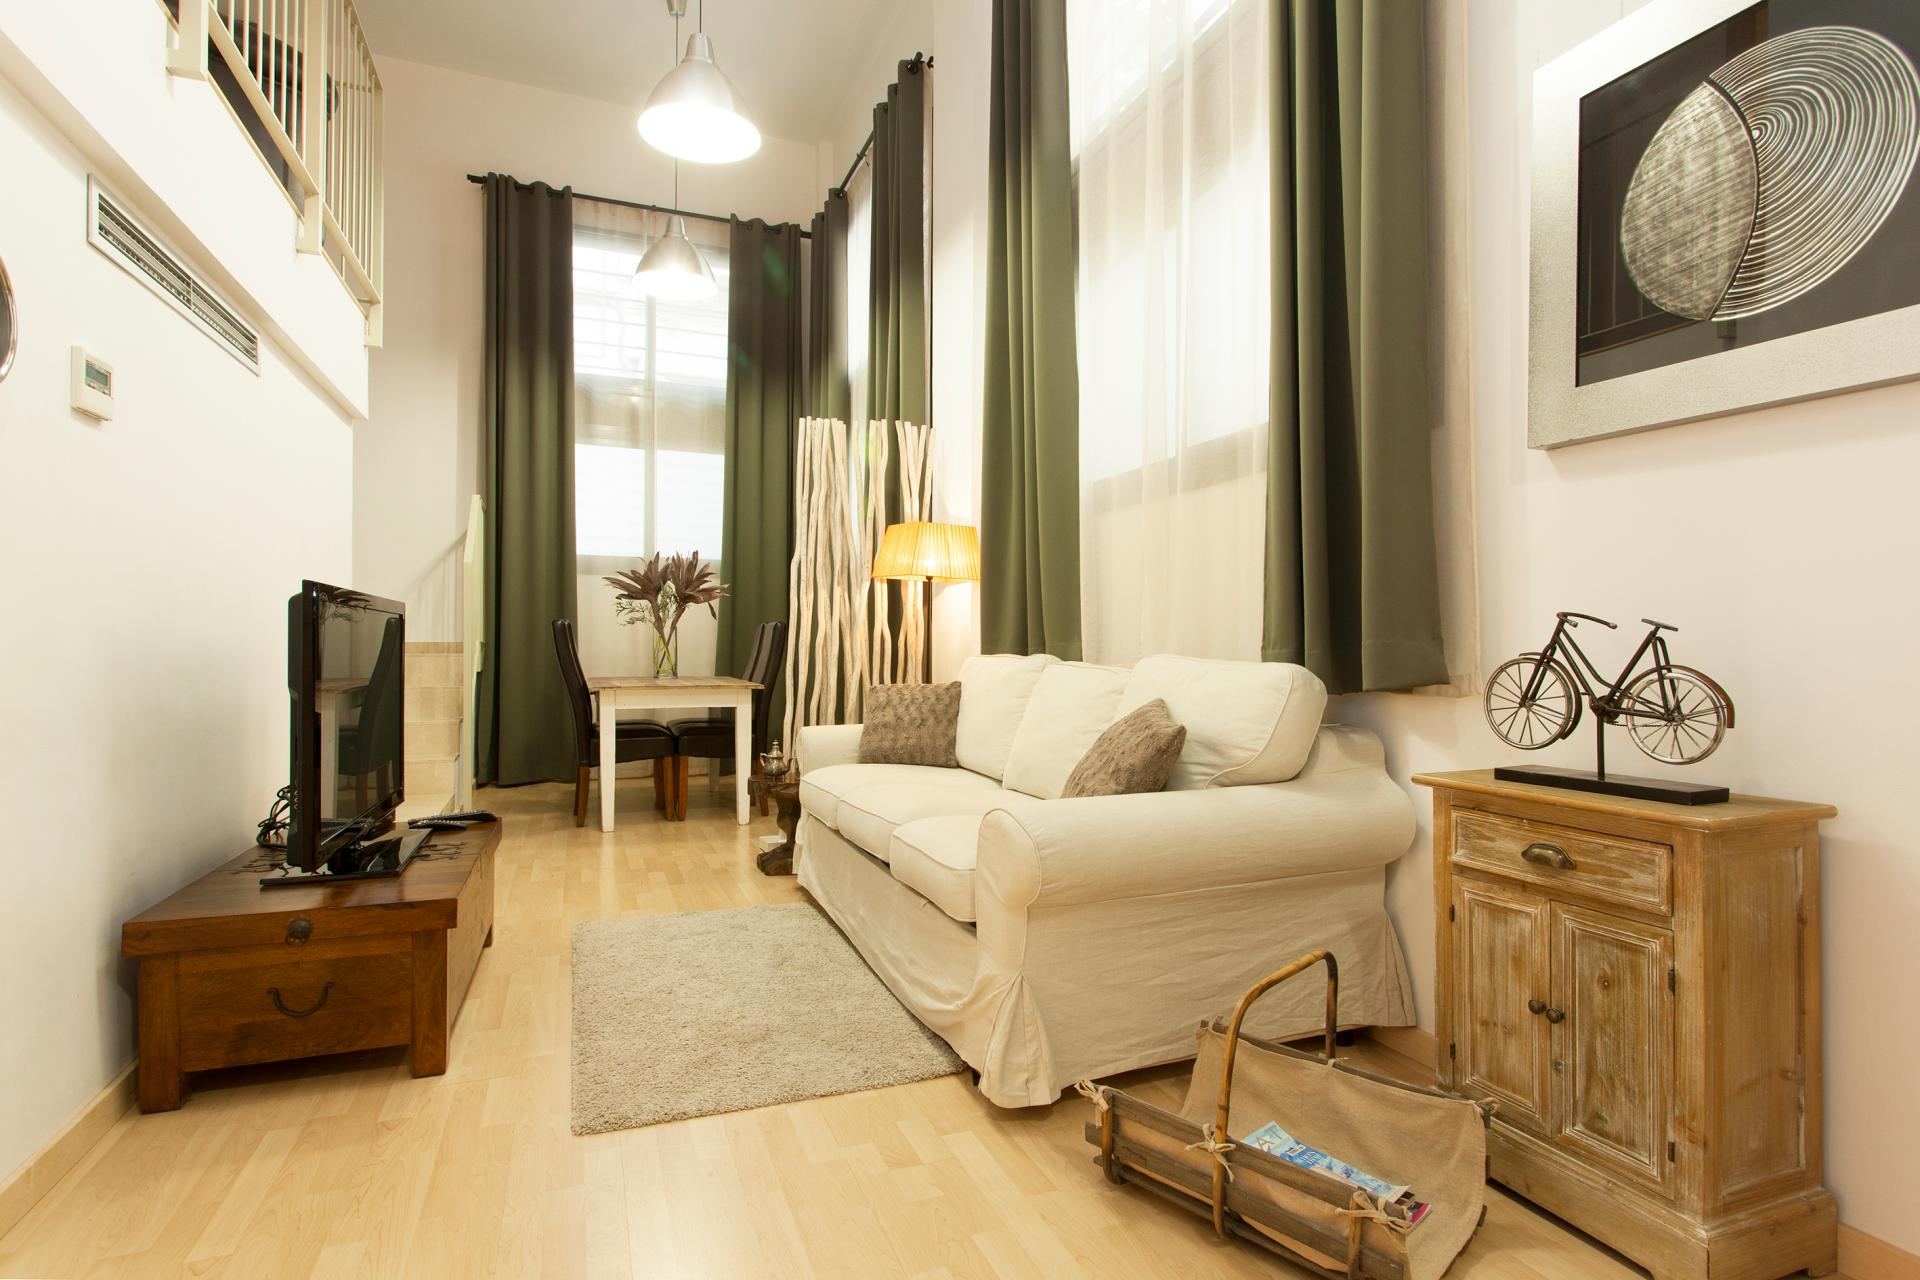 Si affitta duplex in via Sant Joaquim - Travessera de Gracia